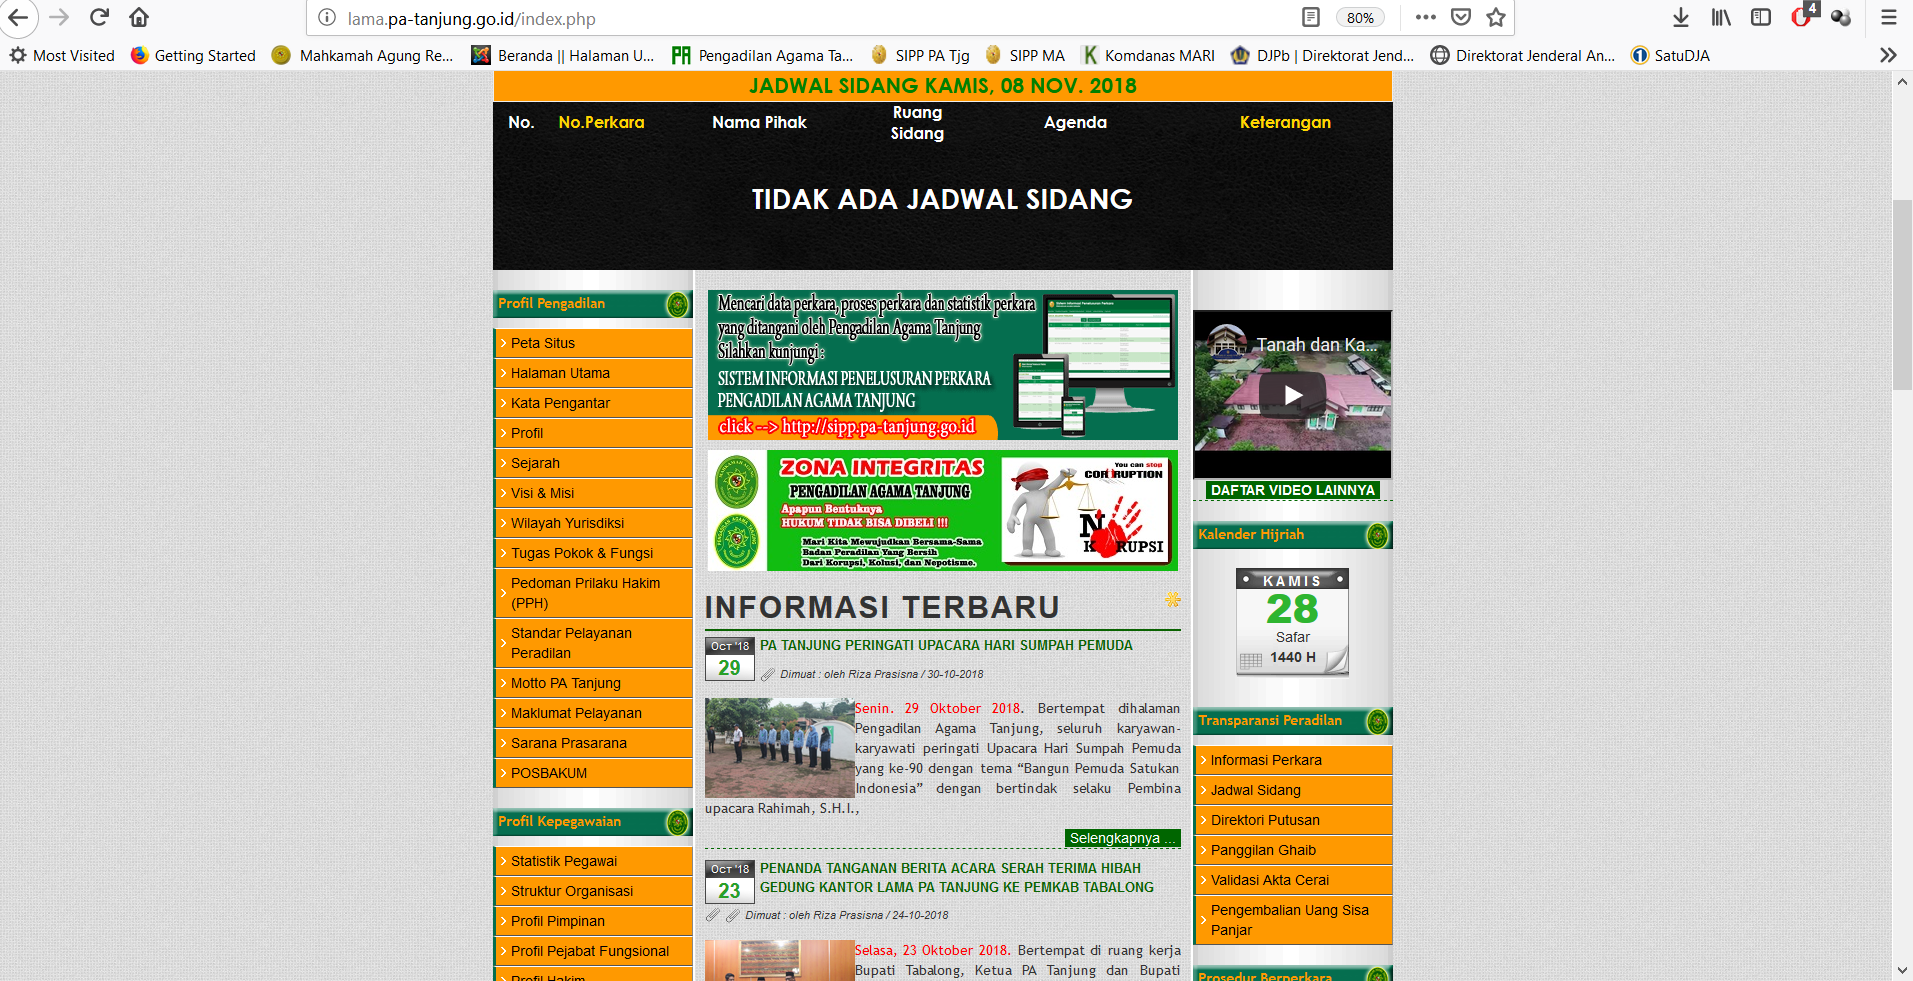 Akses ke Website Lama